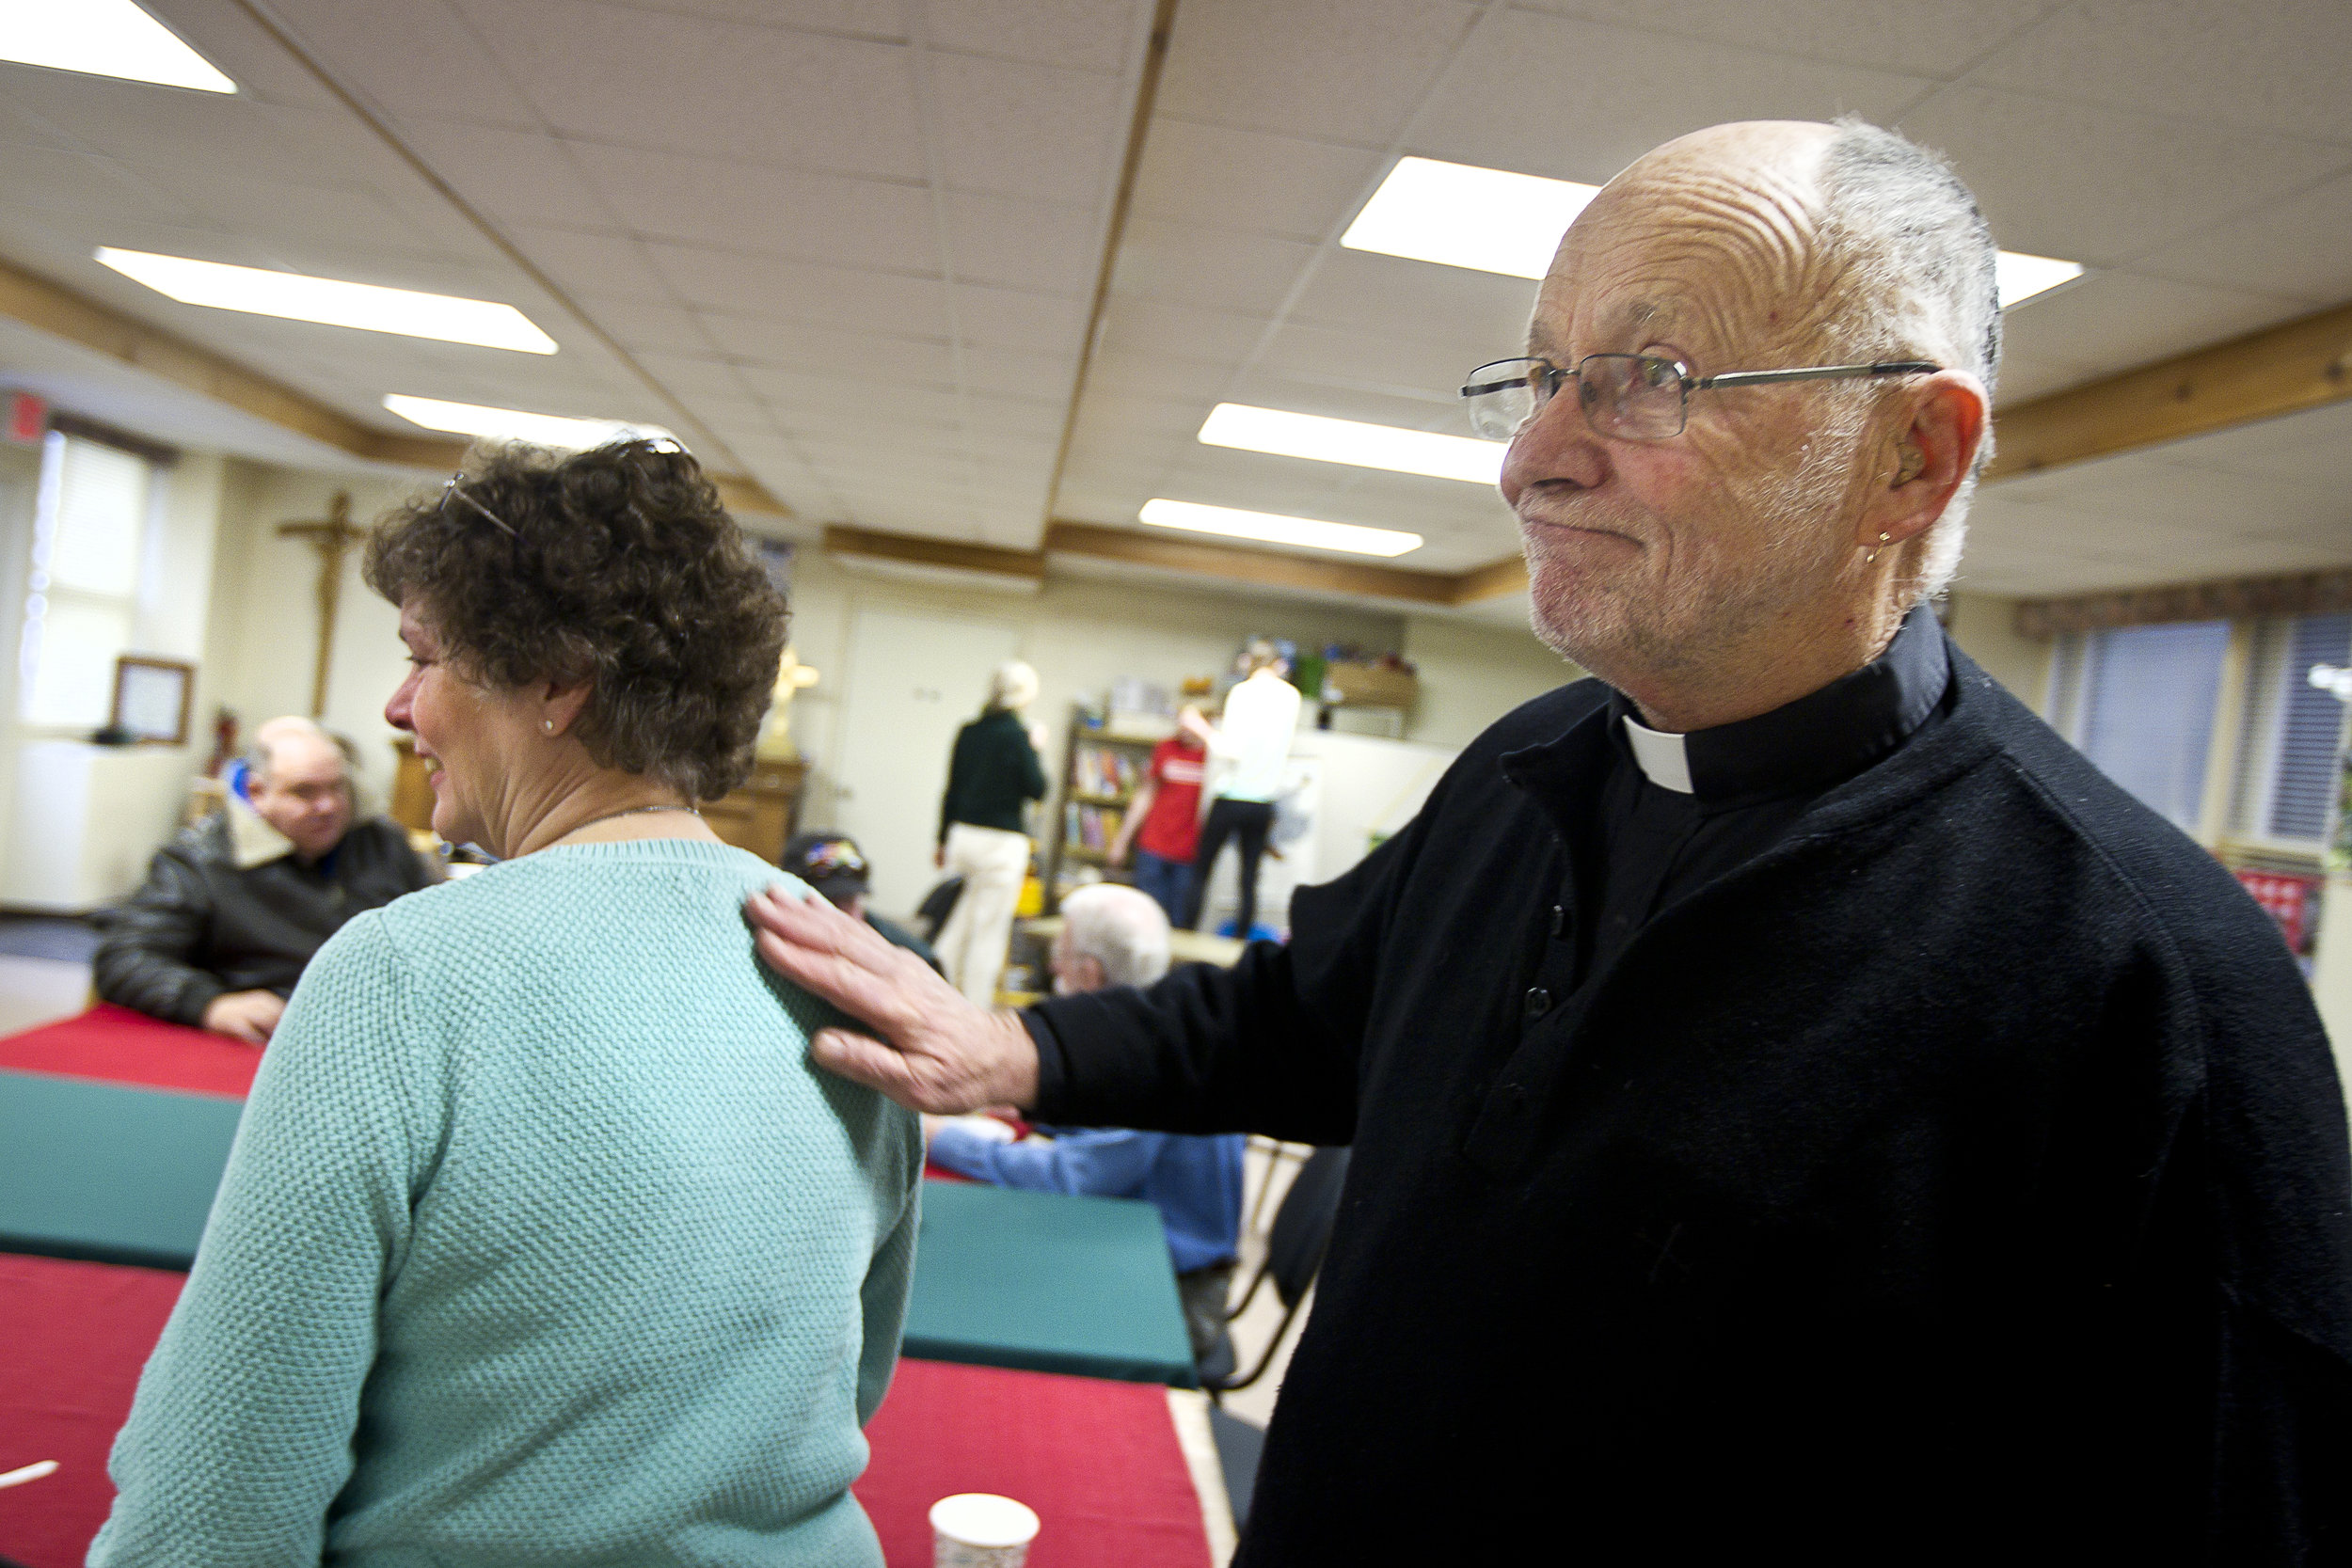 NORTH LAKE, WI — JANUARY 18, 2015: Reverend David Couper, right, pats parishioner Mary Buerosse after mass at St. Peter's Episcopal Church, Sunday, January 18, 2015.